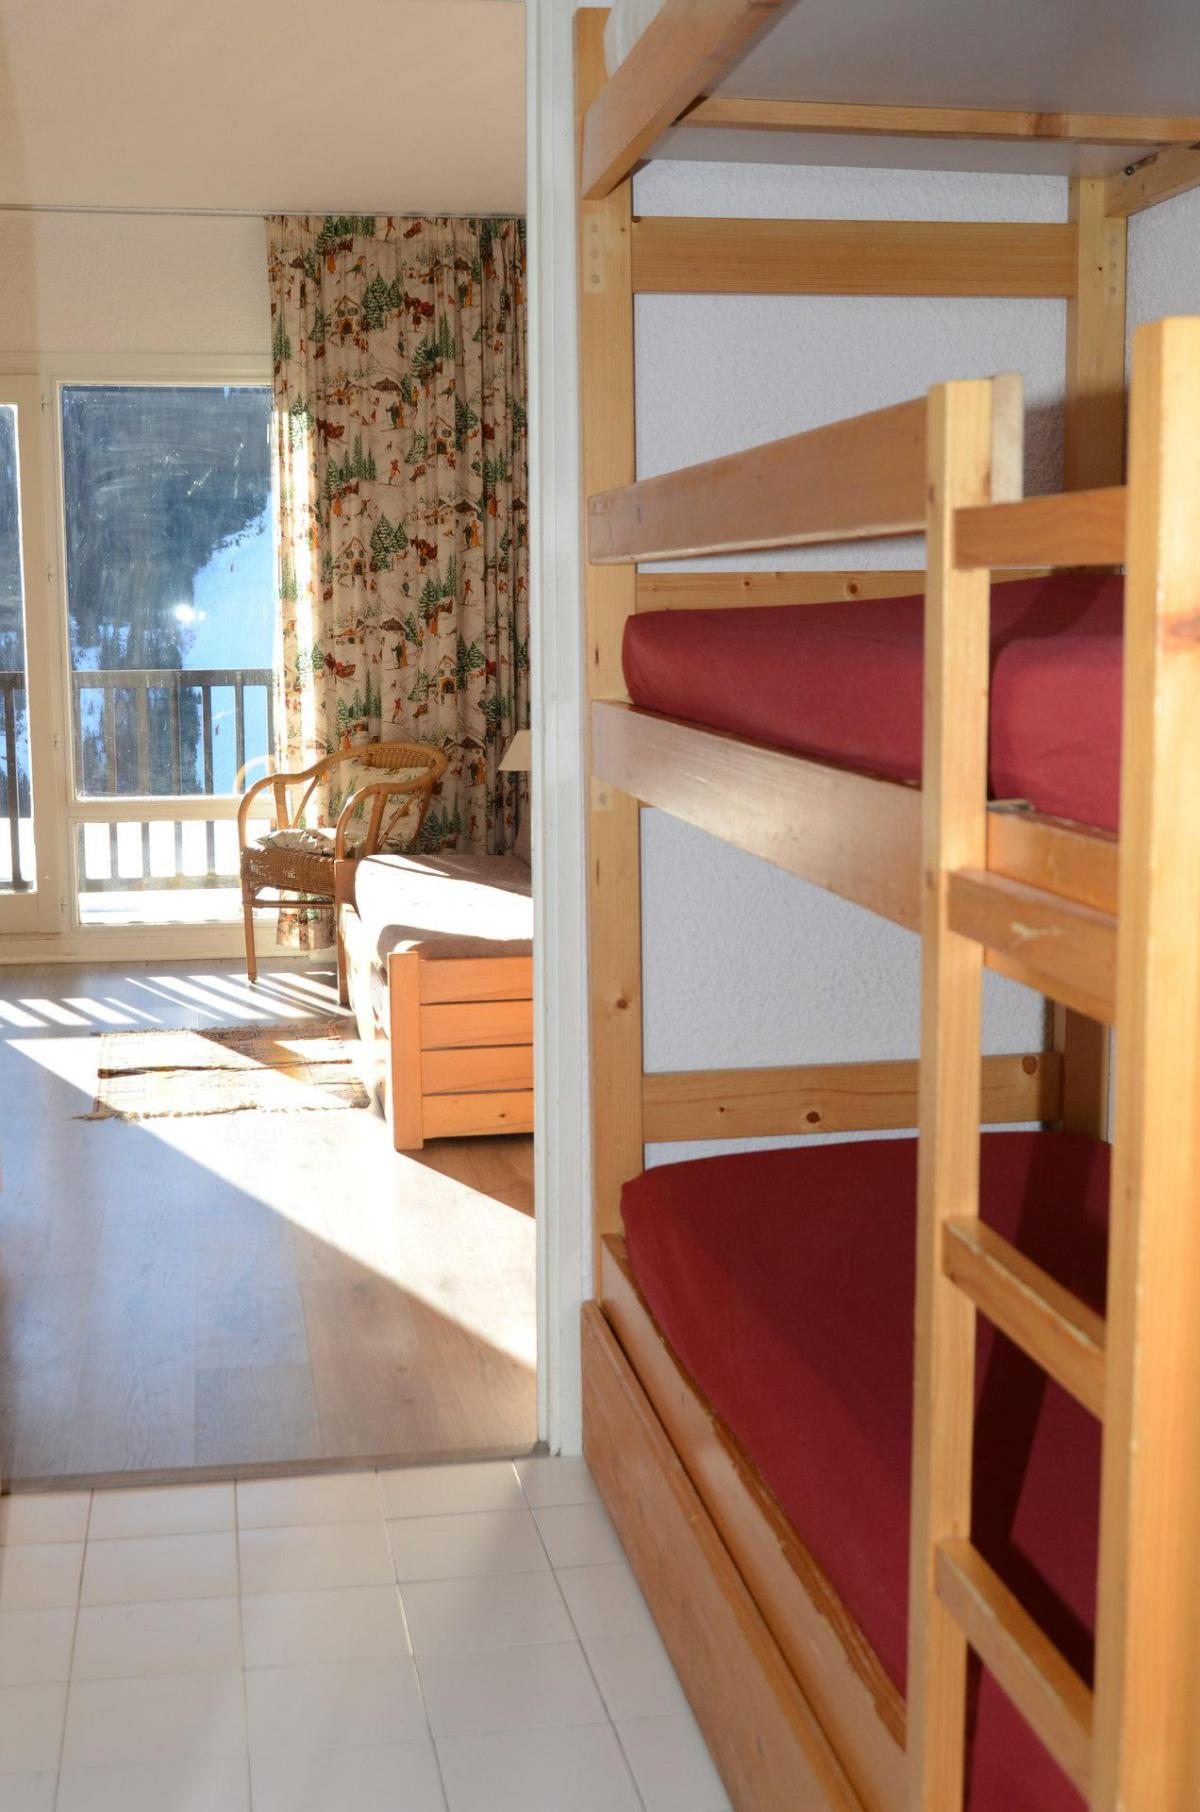 Location au ski Studio 4 personnes (208) - La Residence Andromede - Flaine - Appartement